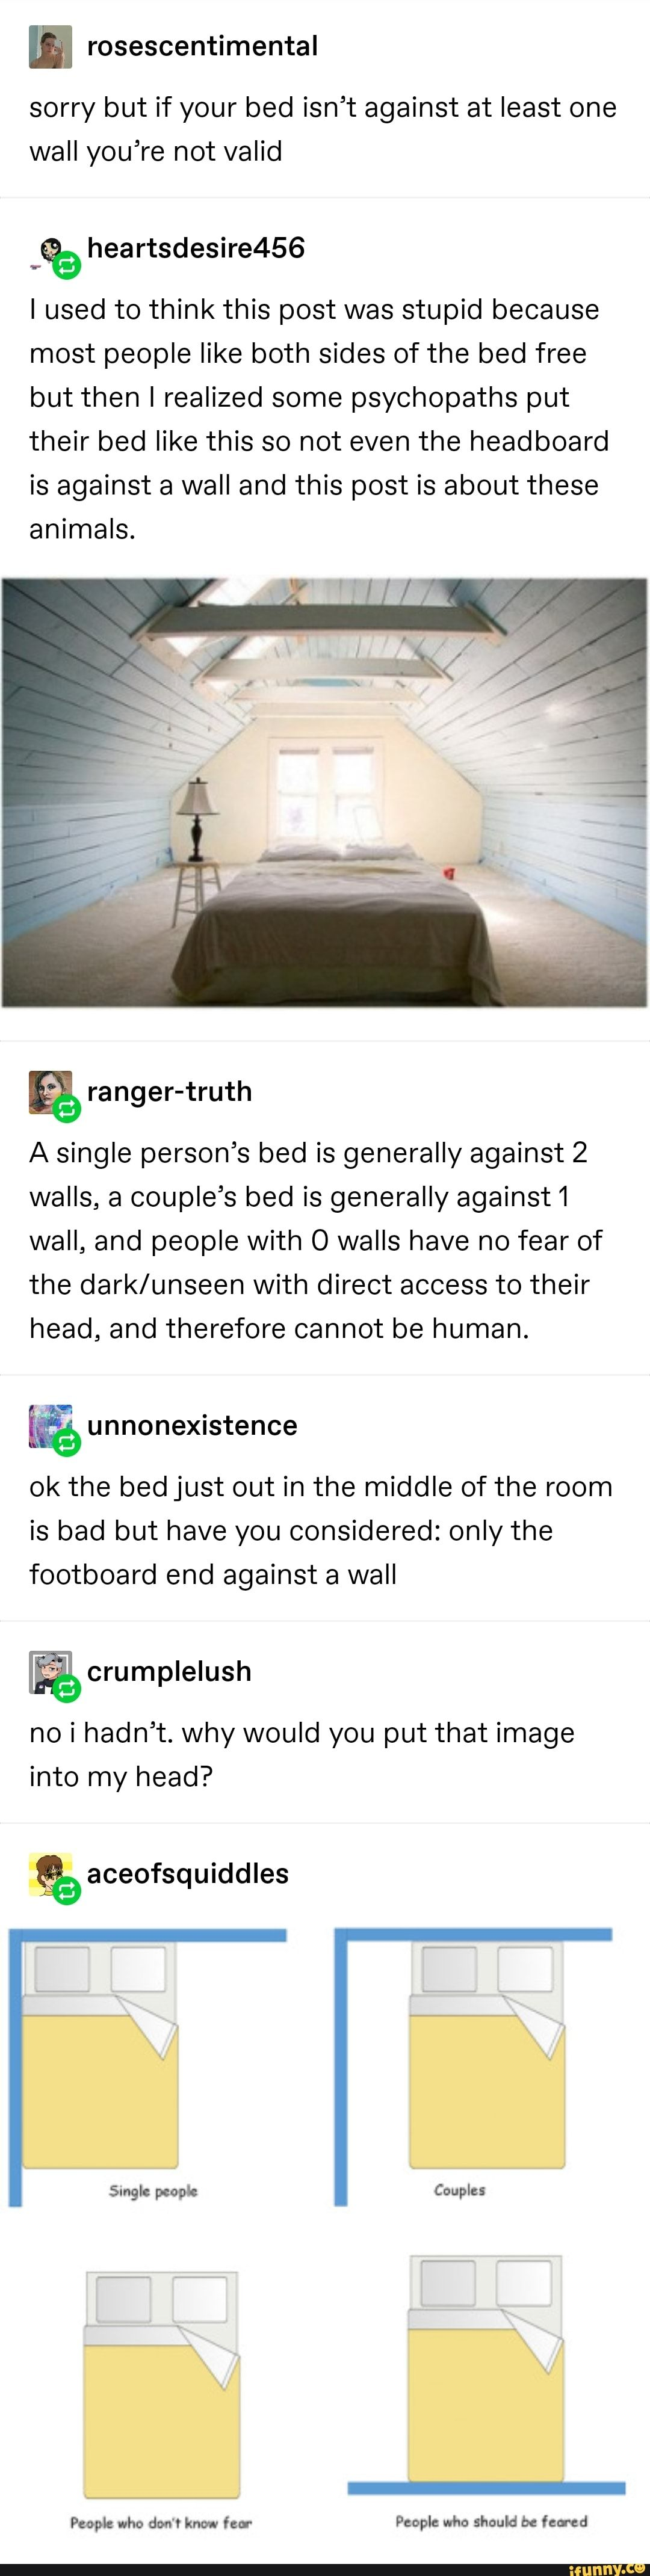 Picture memes EUlpUALx6: 2 comments — iFunny sorry but if your bed isn't against at least one wall you're not valid .% I used to think this post was stupid because most people like both sides of the bed free but then I realized some psychopaths put their bed like this so not even the headboard is against a wall and this post is about these animals. A single person's bed is g...